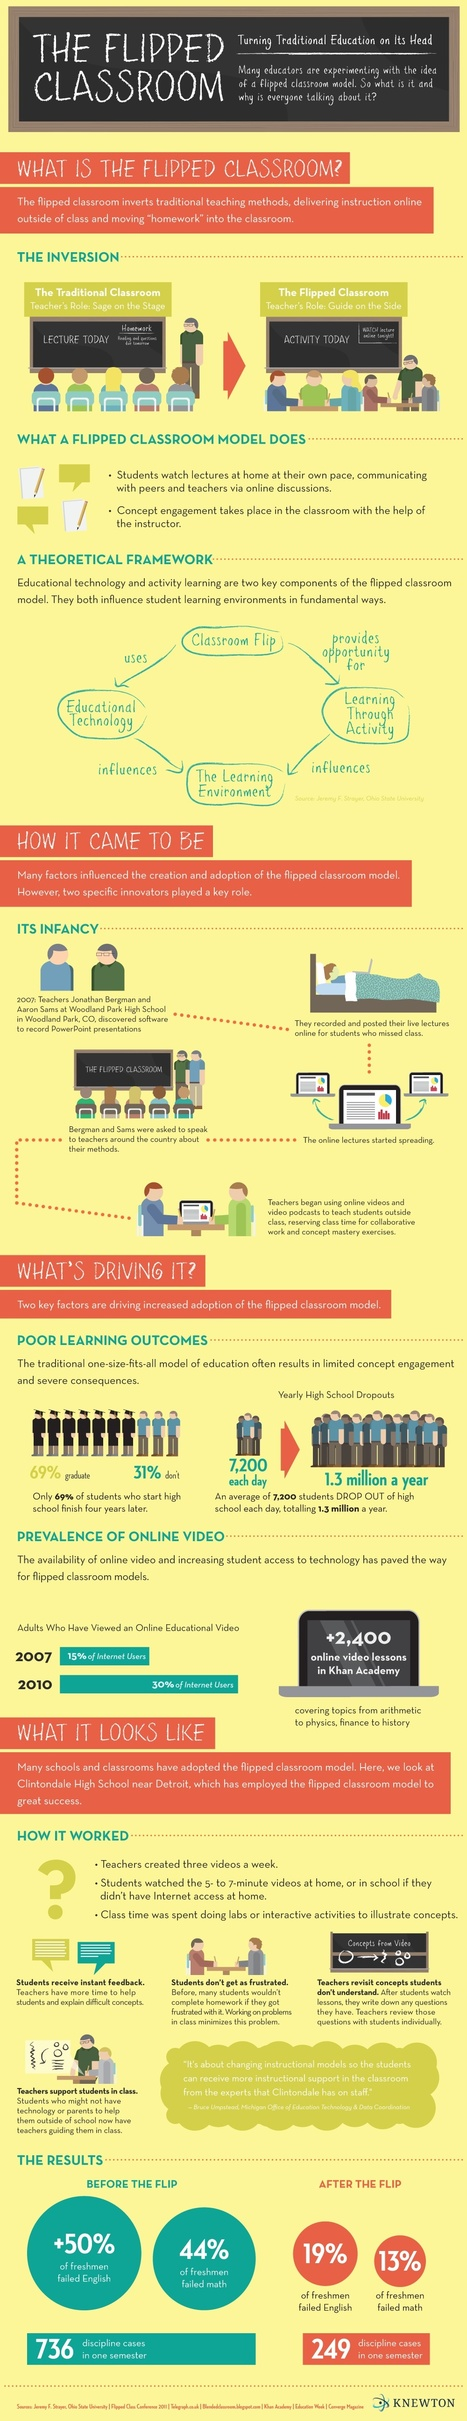 The Teacher's Guide To Flipped Classrooms - Edudemic | Flipped Classroom | Scoop.it